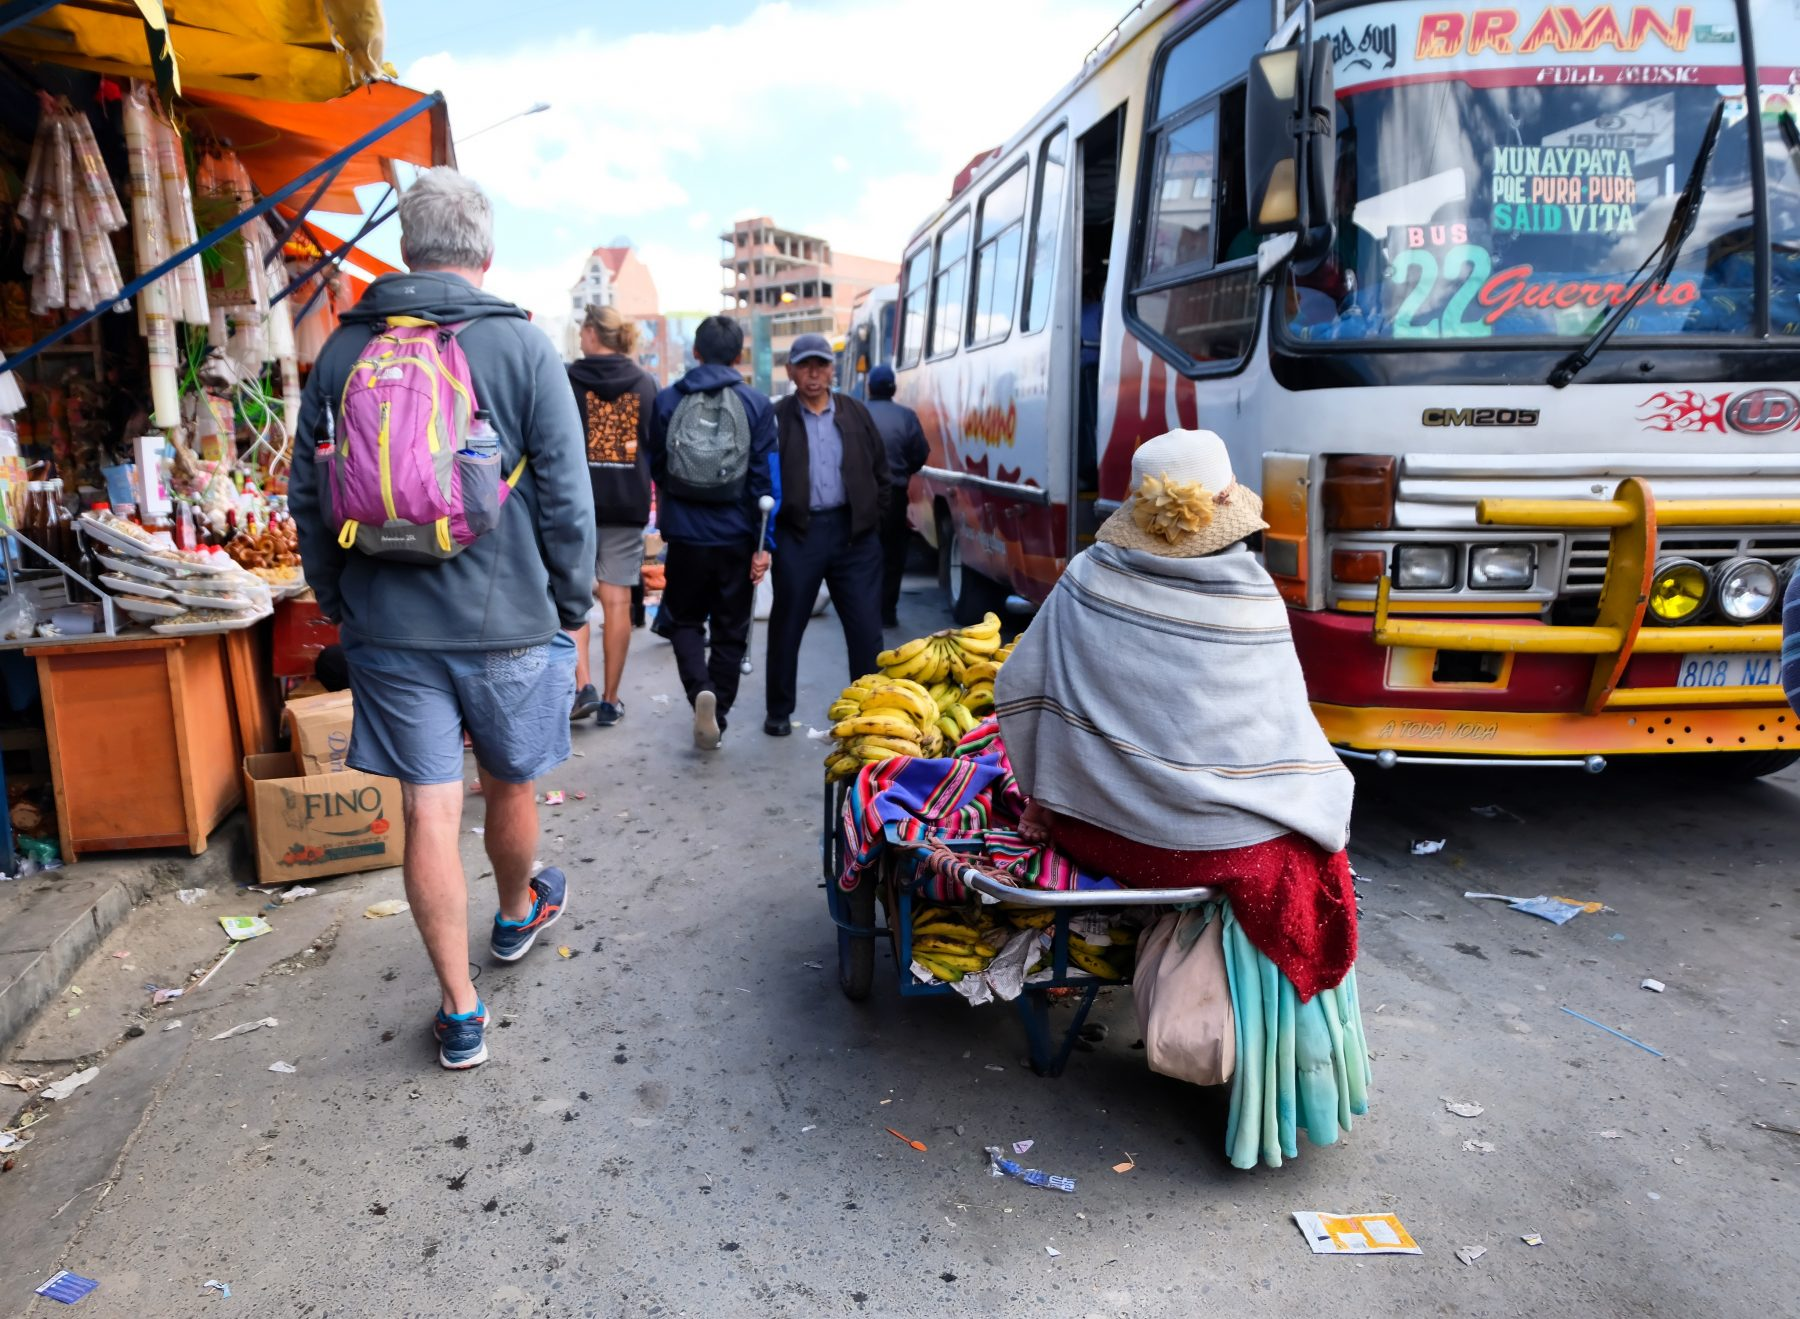 Buses in South America: The Ultimate Coach Transport Travel Guide - Exploring Kiwis